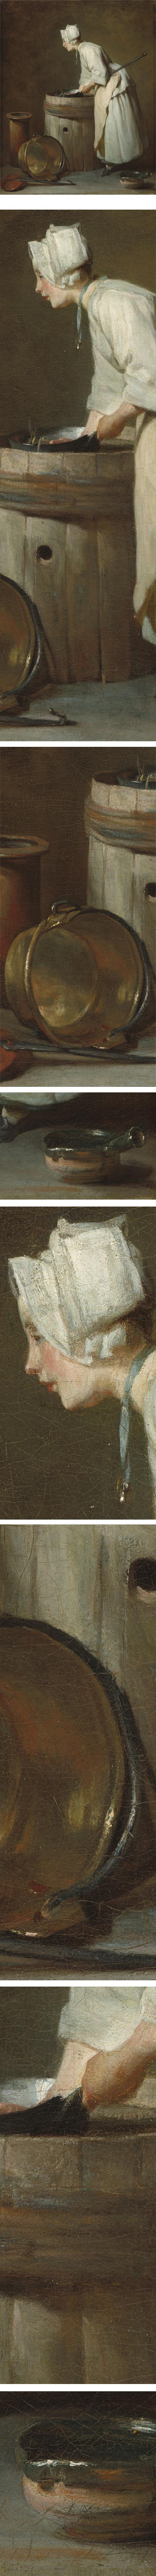 The Scullery Maid, Jean-Siméon Chardin